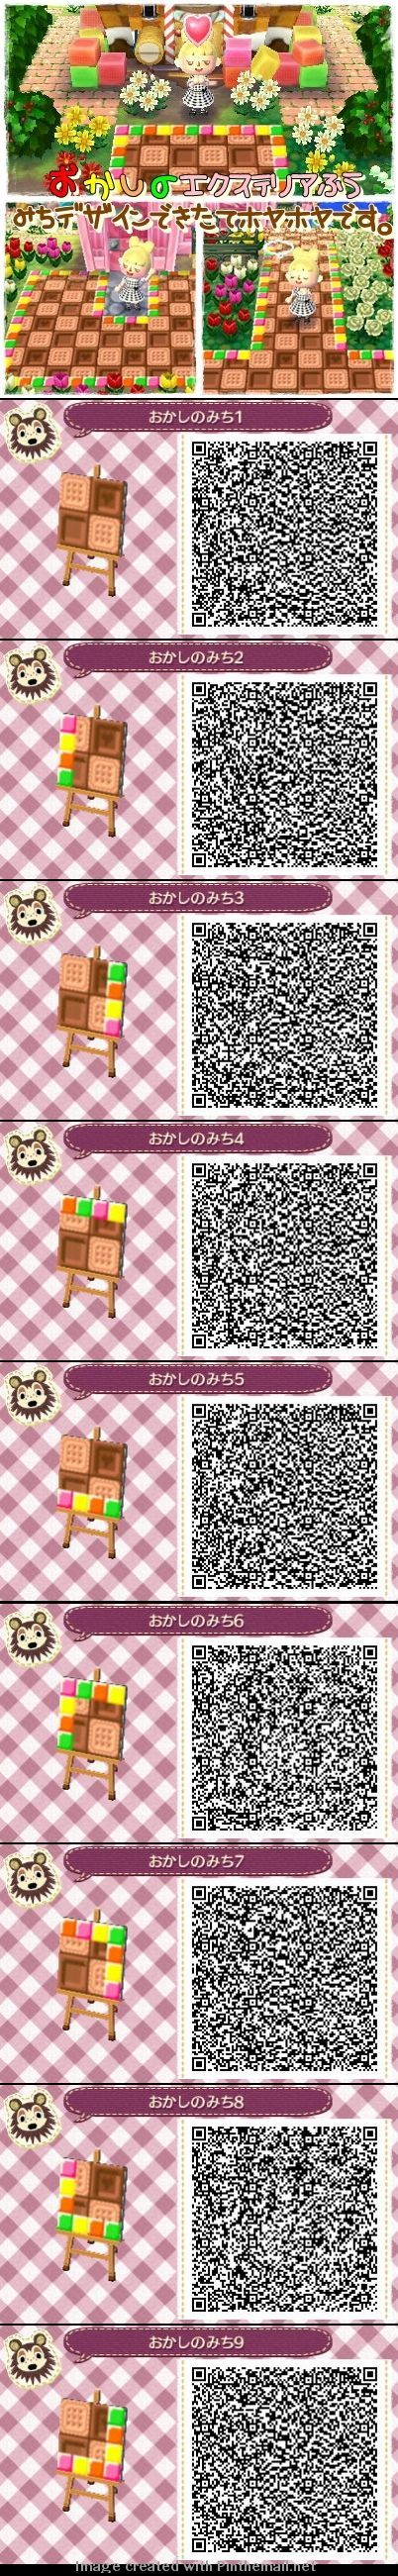 17 Best Images About Animal Crossing New Leaf Qr Codes